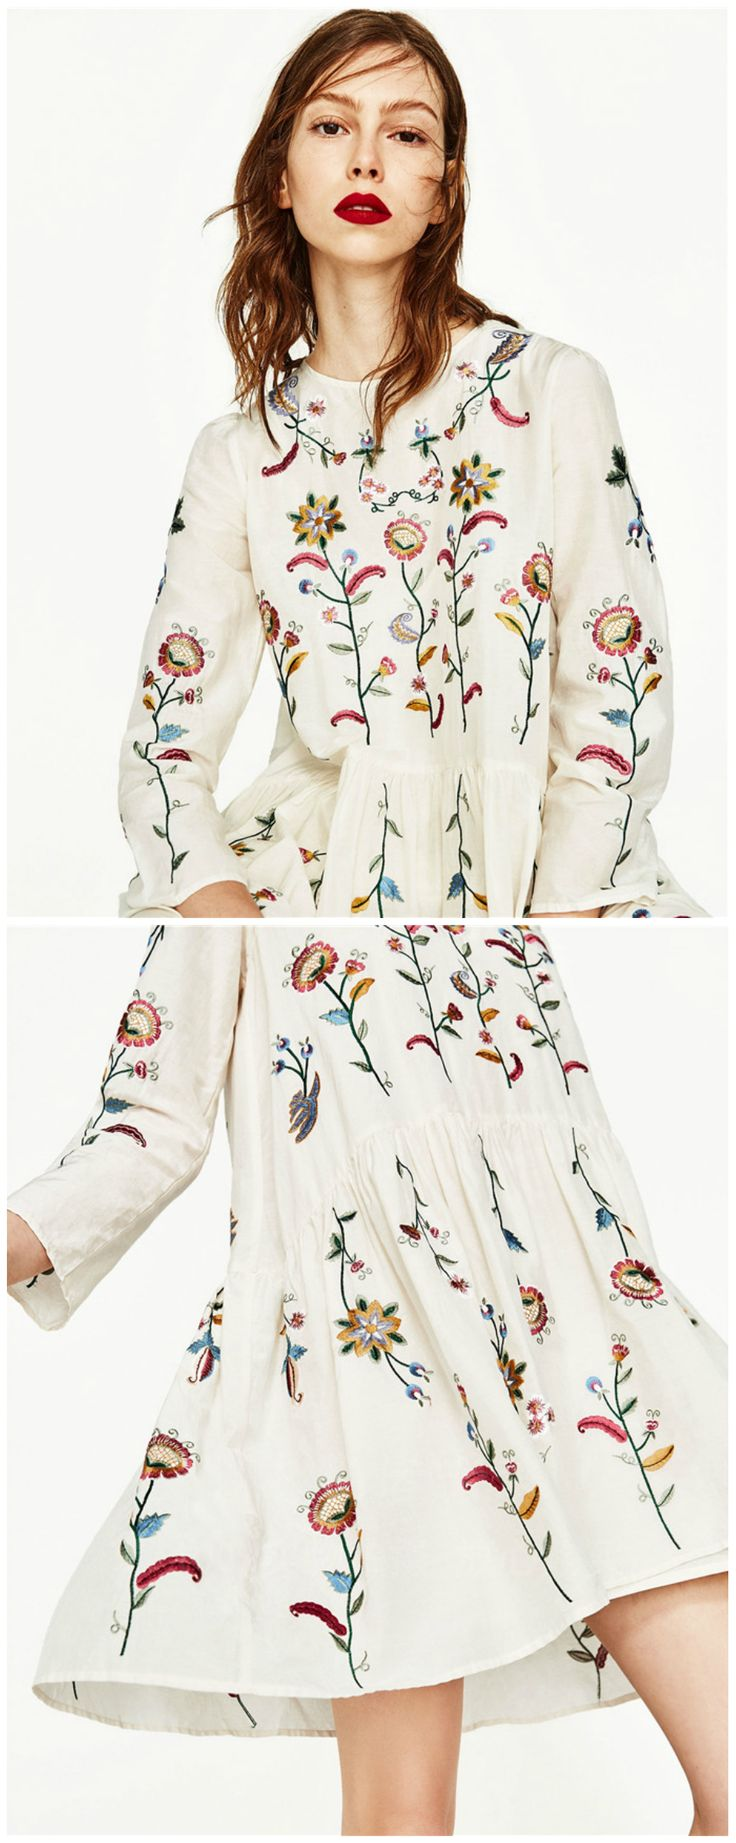 A White Embroidery Dress is now available at . Inspired by the boho chic style trend. Fashion trend and styles from hippie chic, modern vintage, gypsy style, boho chic, hmong ethnic, street style, geometric and floral outfits. We Love boho style and embroidery stitches. Hippie girls with free spirit sharing woman outfit ideas and bohemian clothes, cute dresses and skirts.